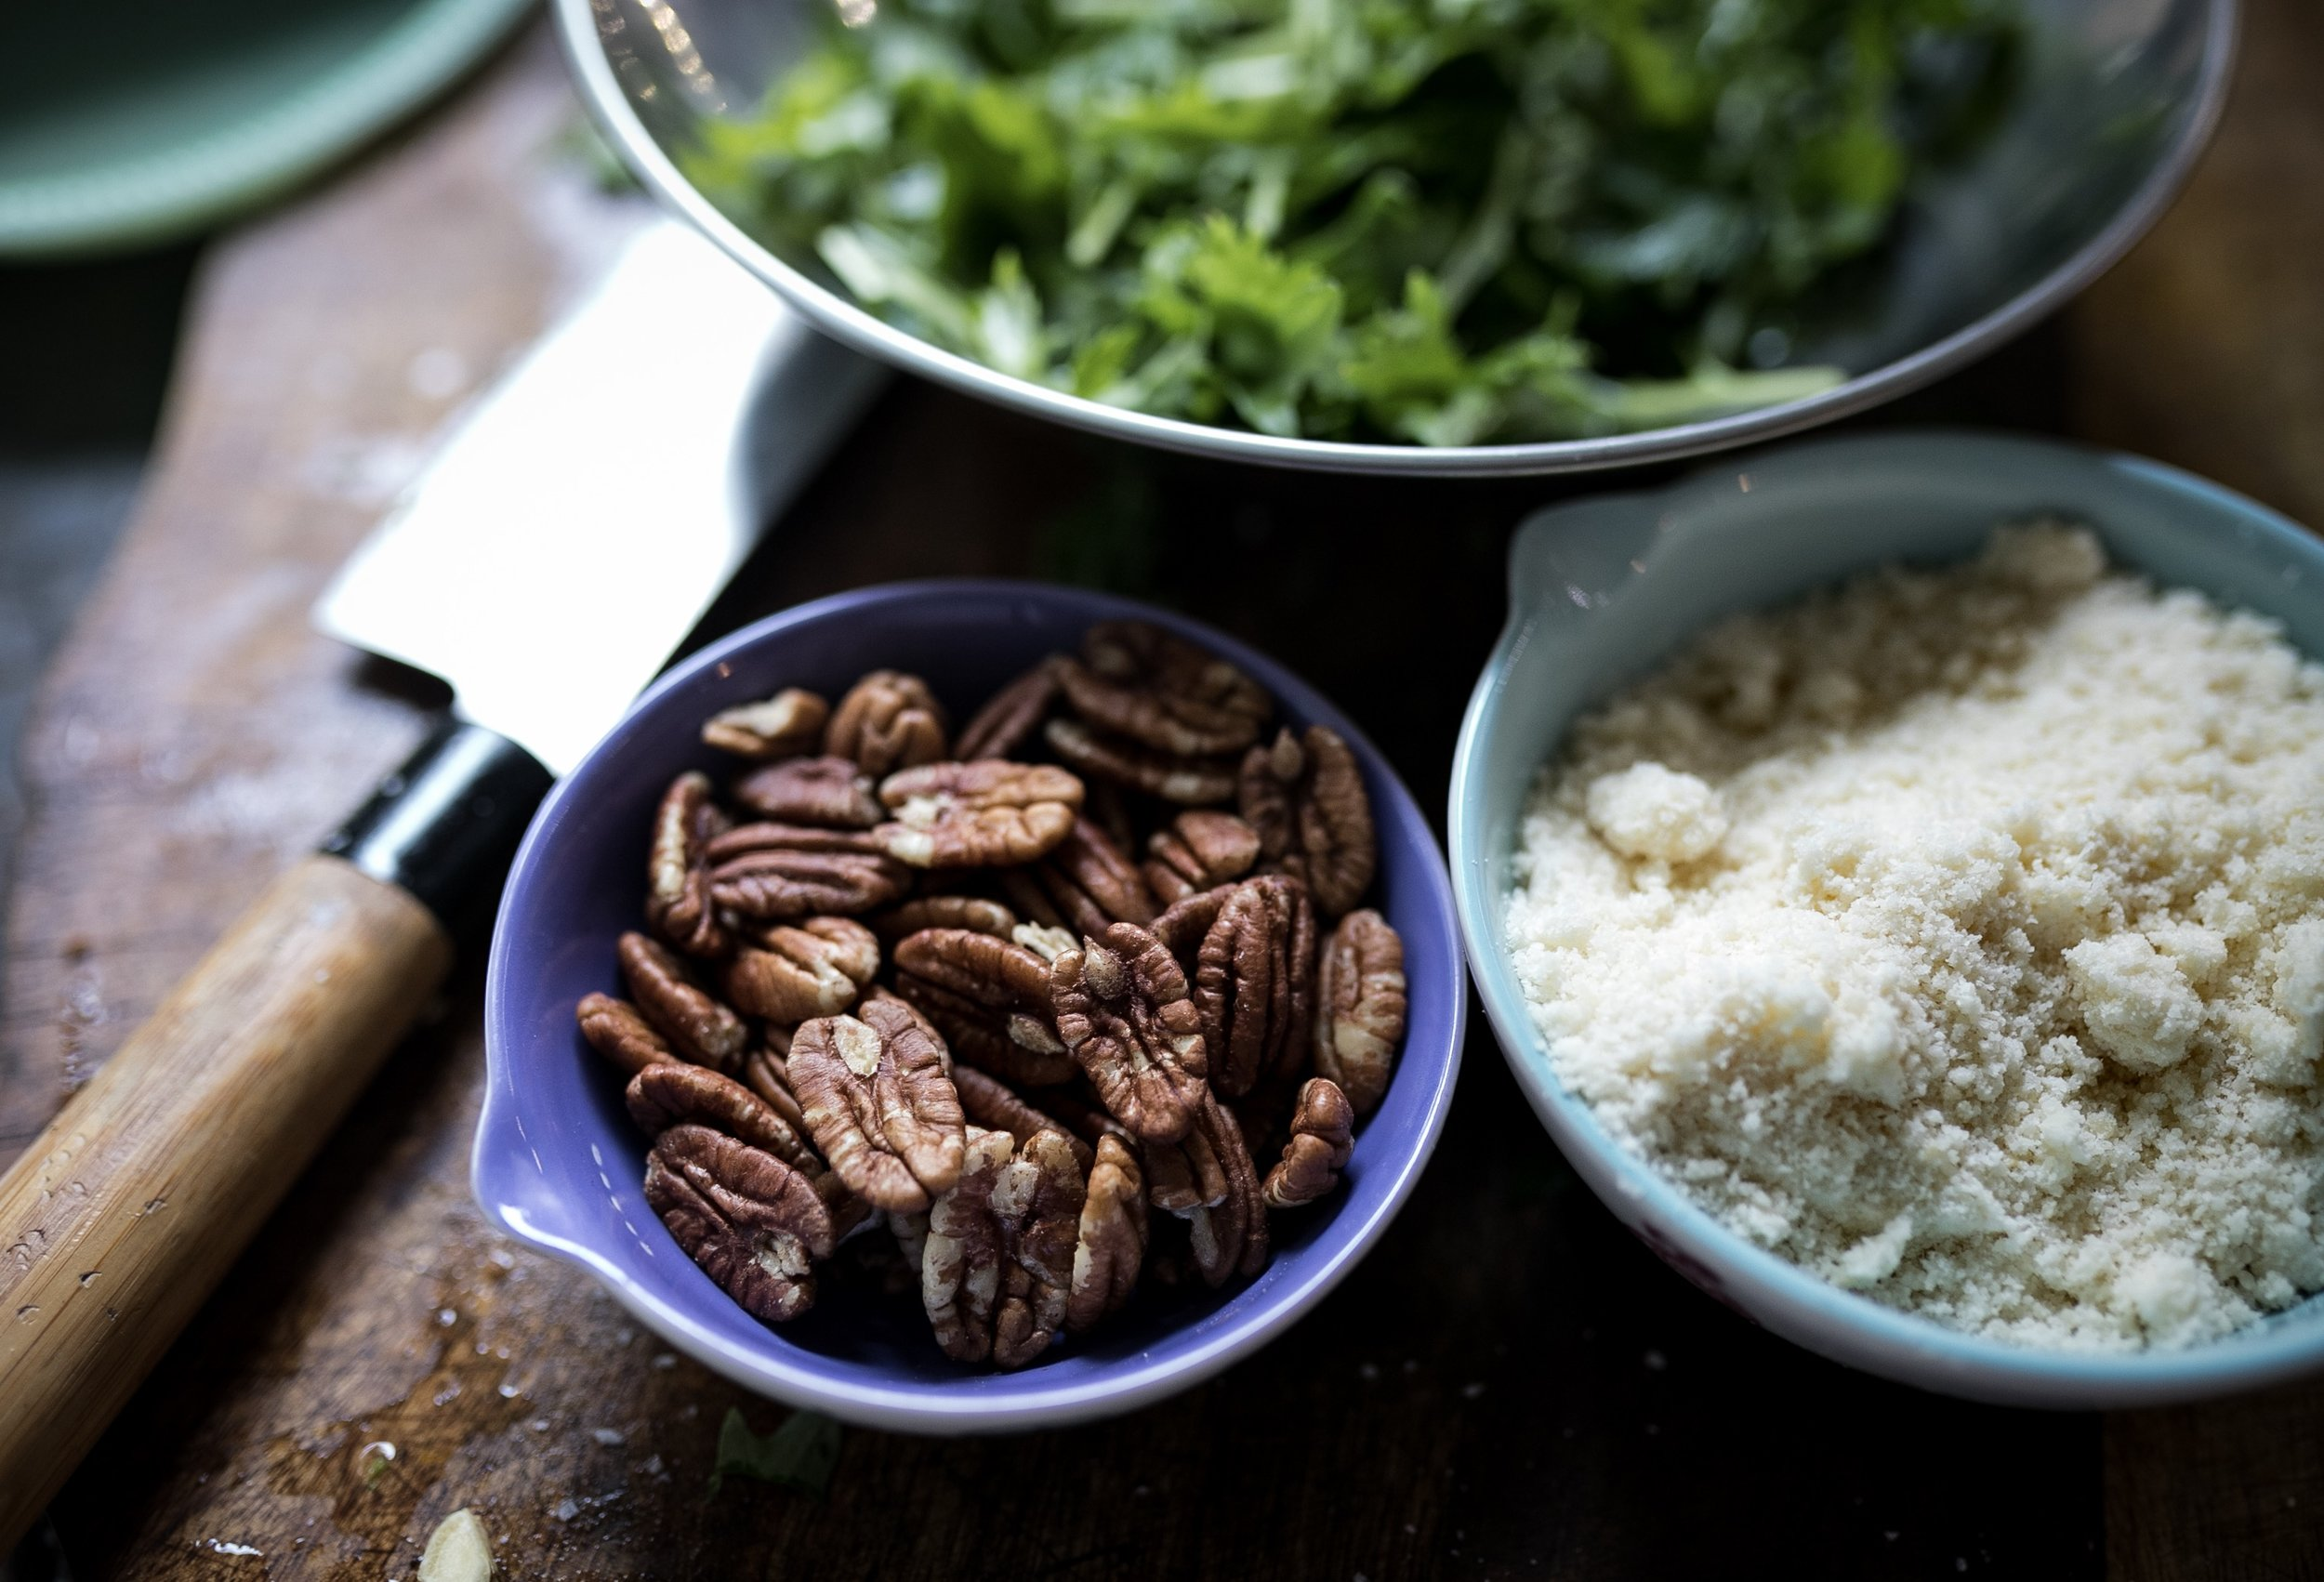 Yum pecans and parmesan - a nice flavor combo